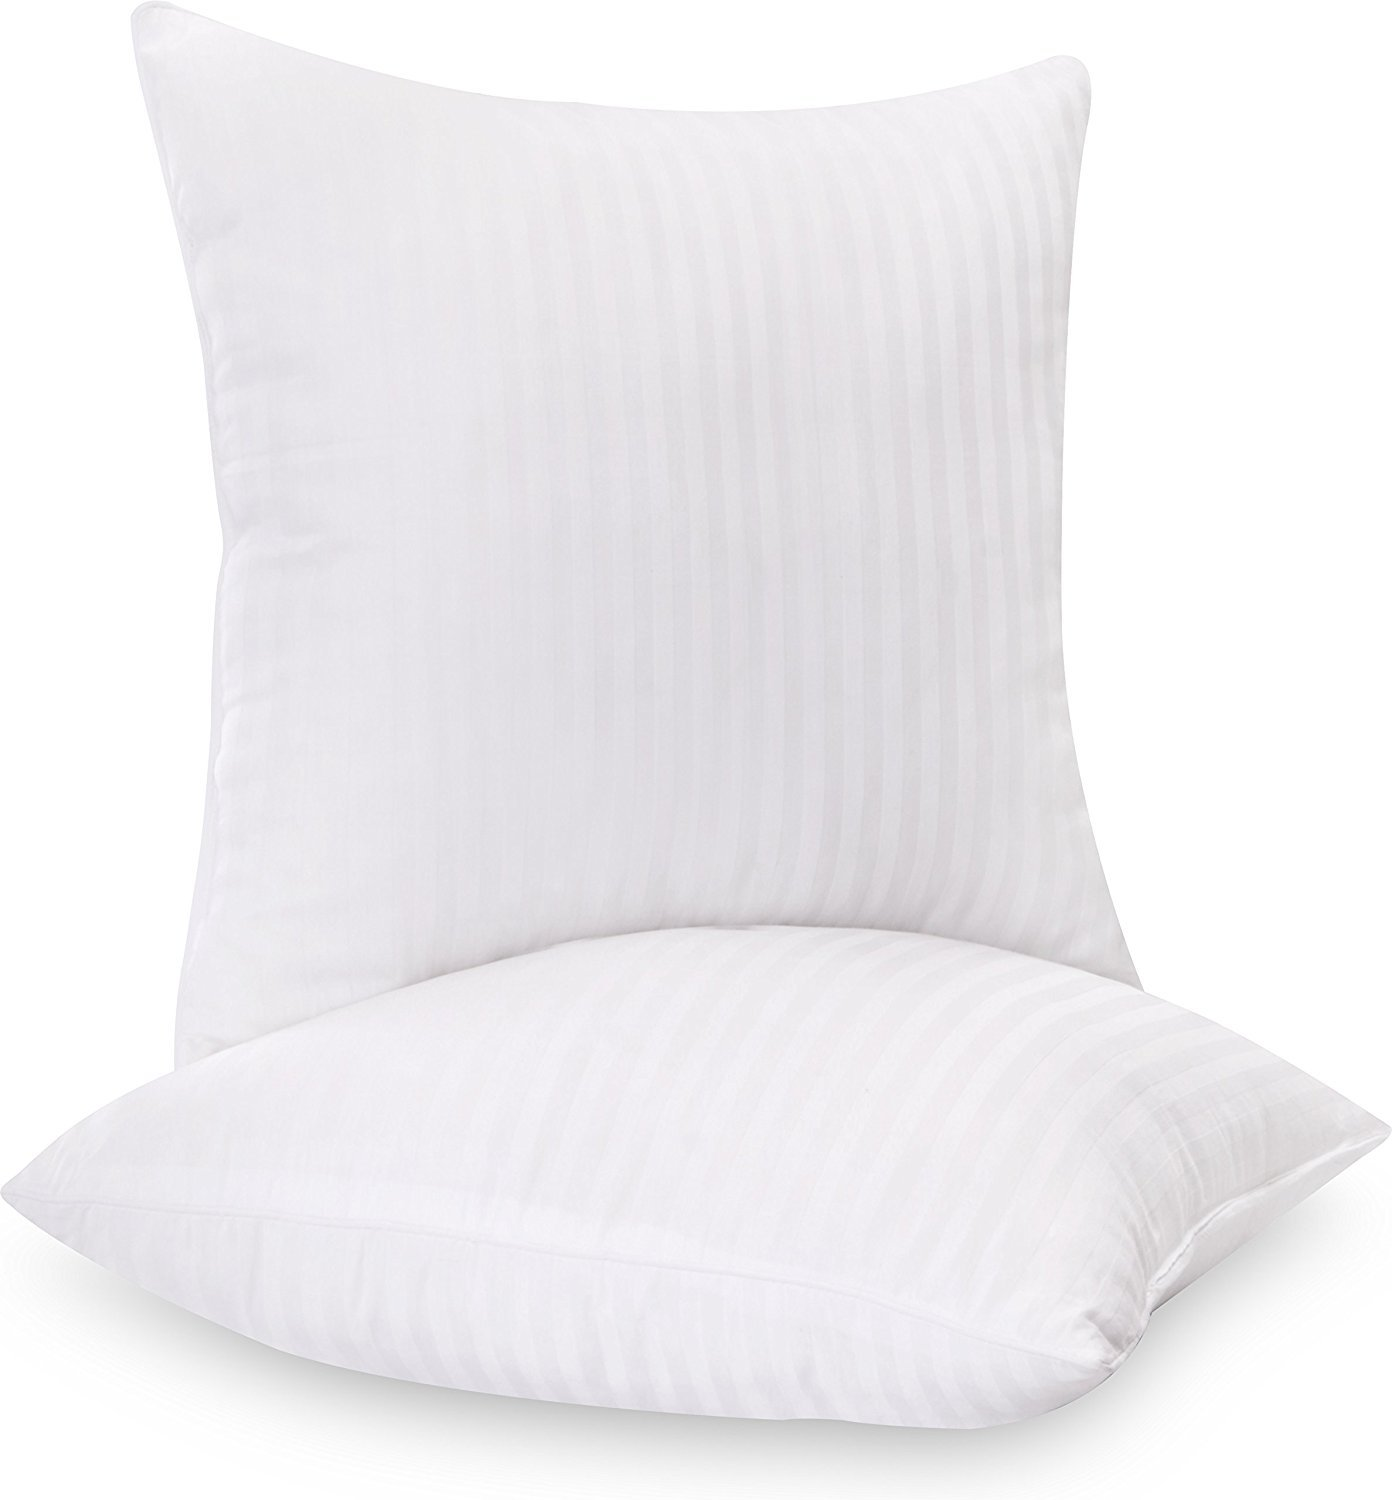 Utopia Bedding Decorative Pillow Insert (2 Pack) - Square 18 x 18 Sofa & Bed Pillow - Polyester Cotton Indoor White Pillows UB860